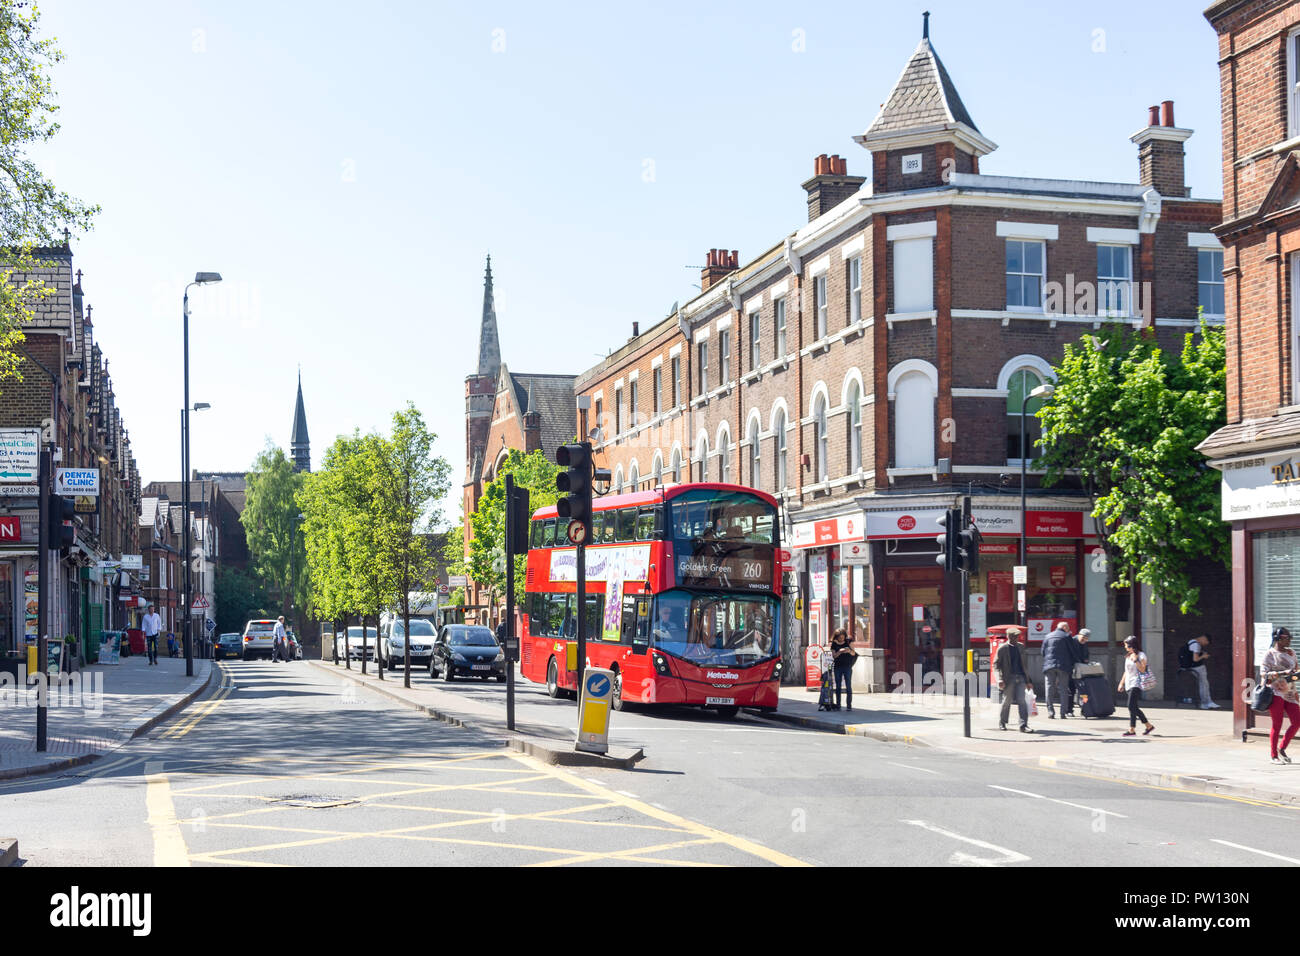 High Road, Willesden, London Borough of Brent, Greater London, England, United Kingdom - Stock Image